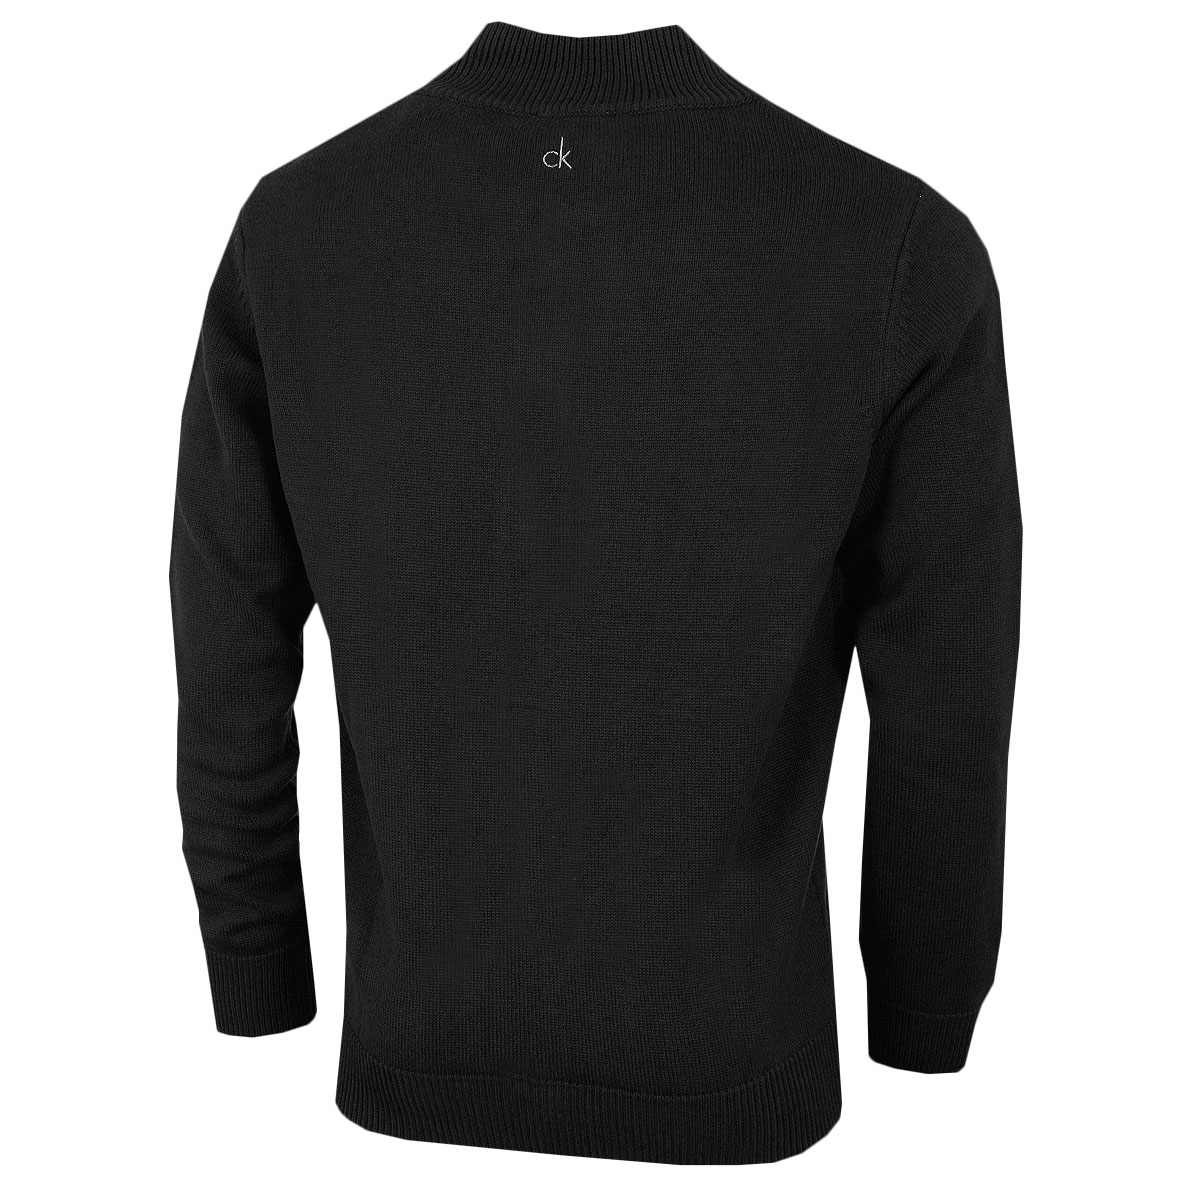 Calvin-Klein-Golf-Mens-2019-Chunky-Cotton-1-2-Zip-Golf-Top-Sweater-37-OFF-RRP thumbnail 7